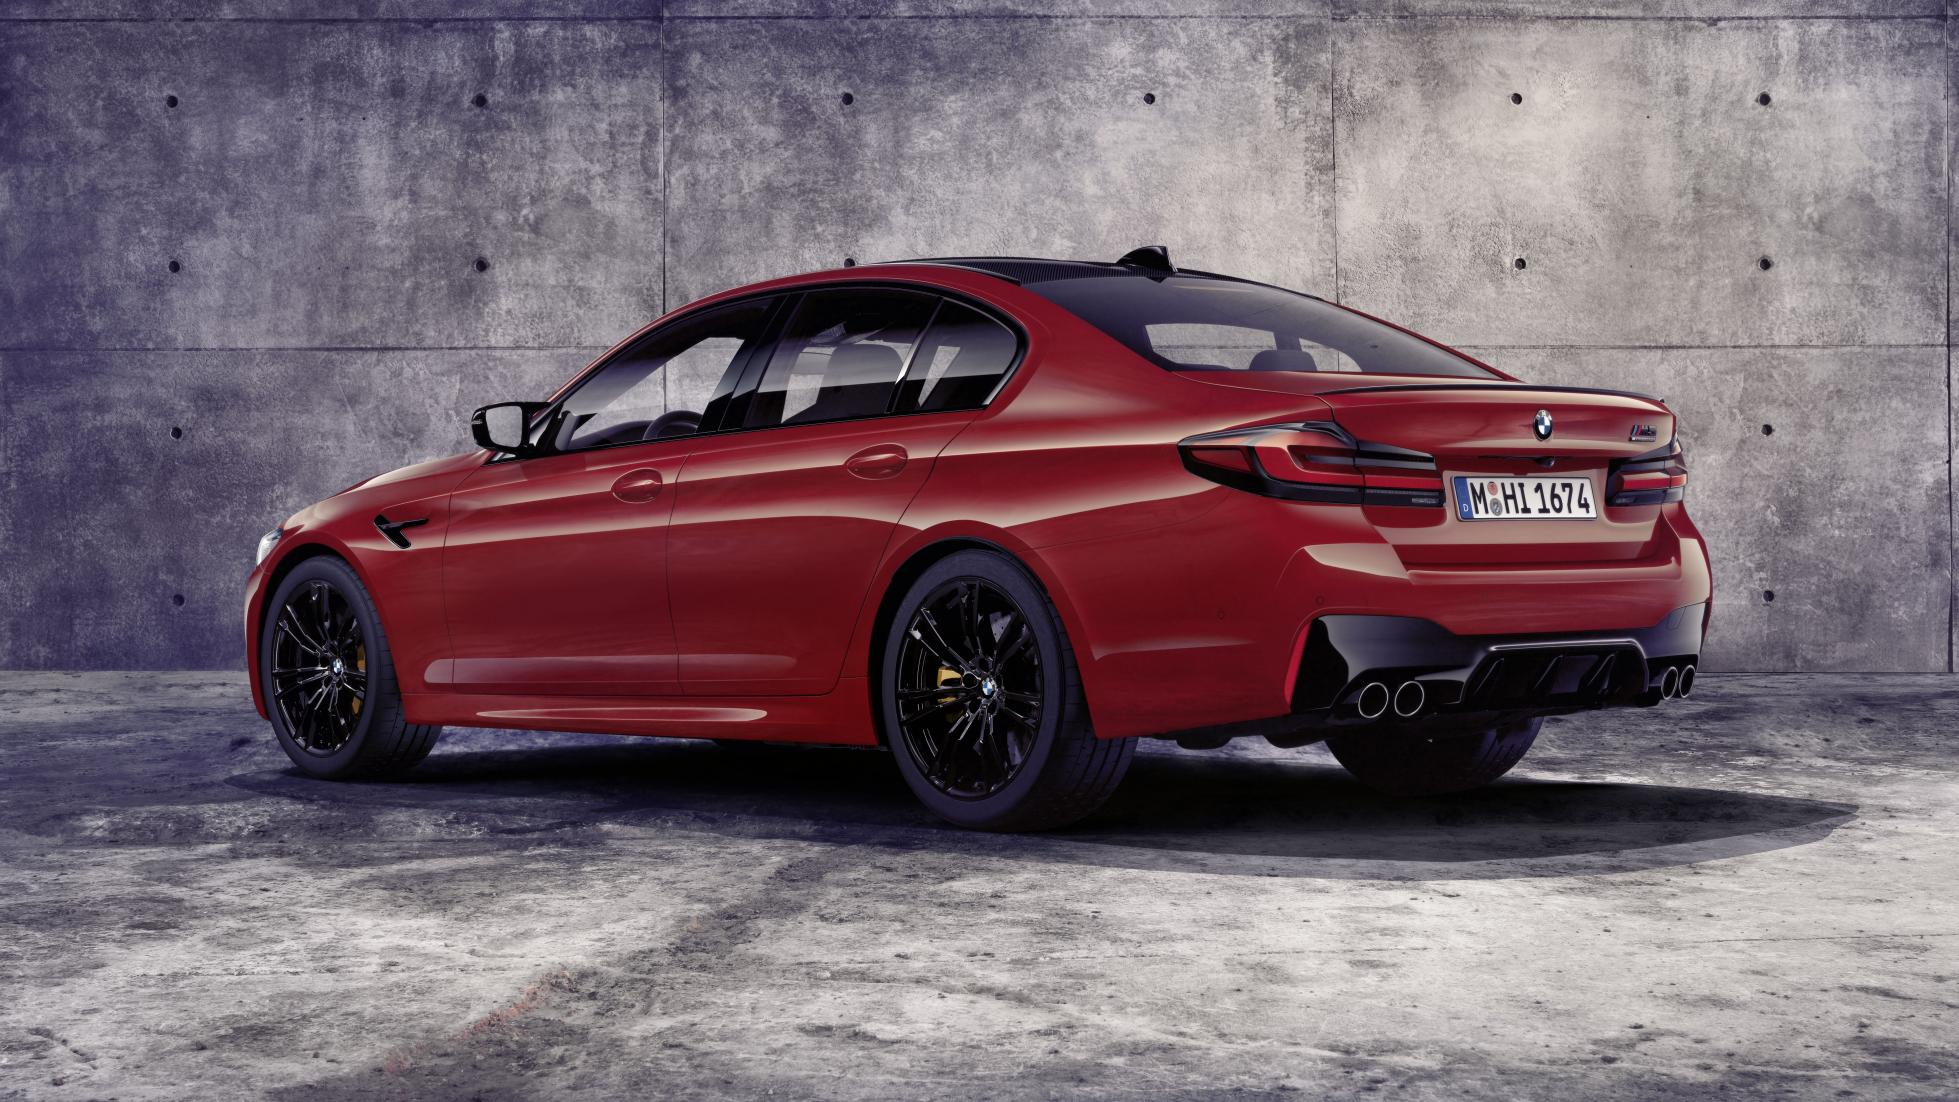 2021 F90 Lci Bmw M5 Competition Gets Fancy New Dampers Topgear Singapore